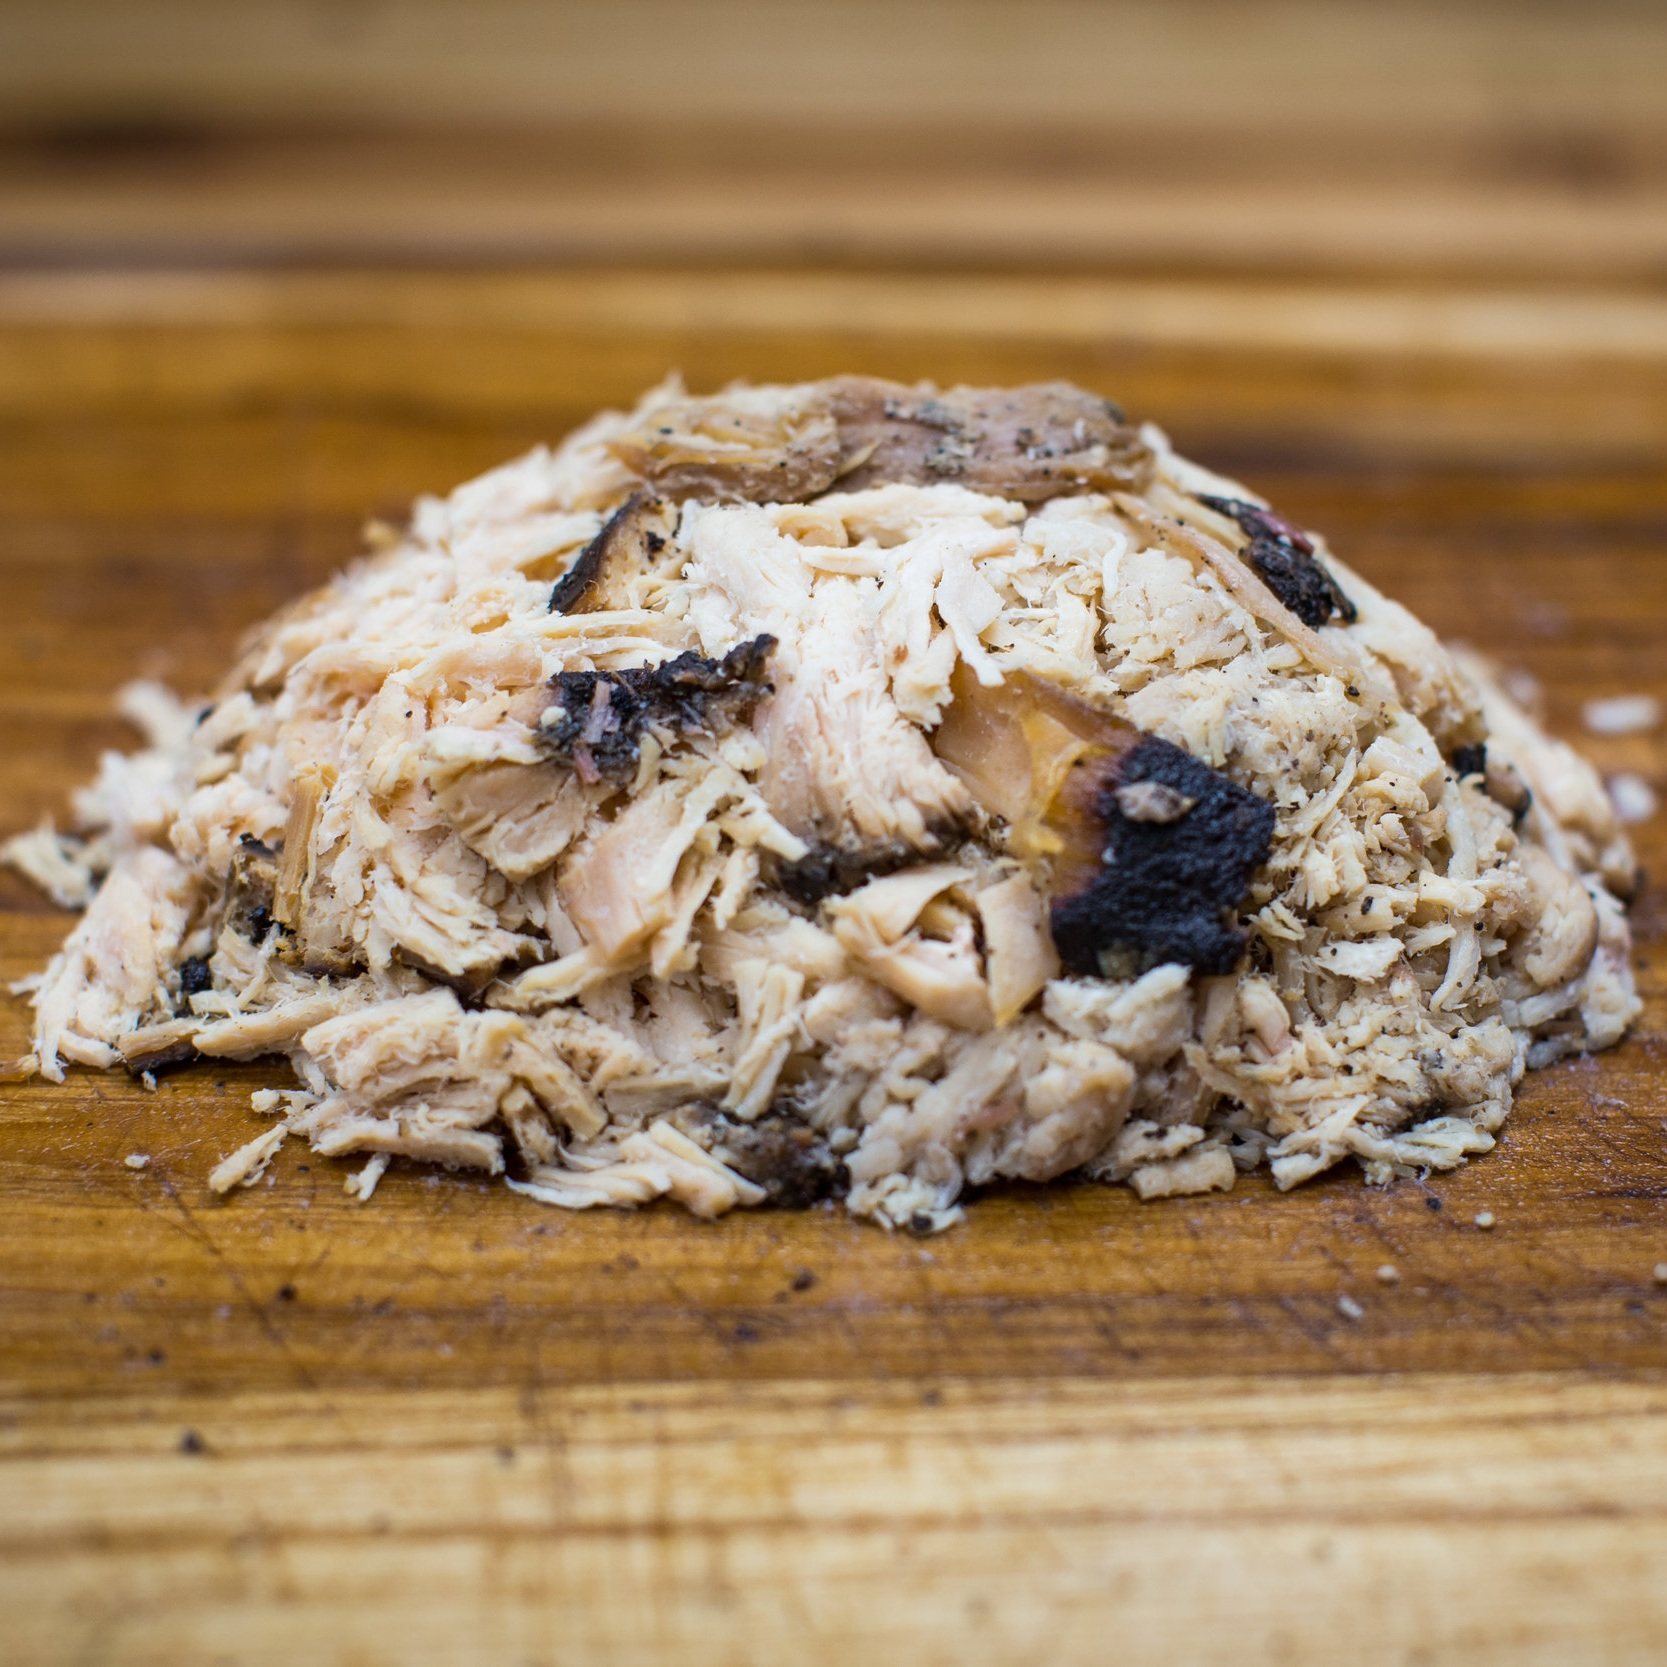 Smoked Chopped Chicken (1 lb): $ 15.00  1 lb feeds 3-4 people. Sauces included.